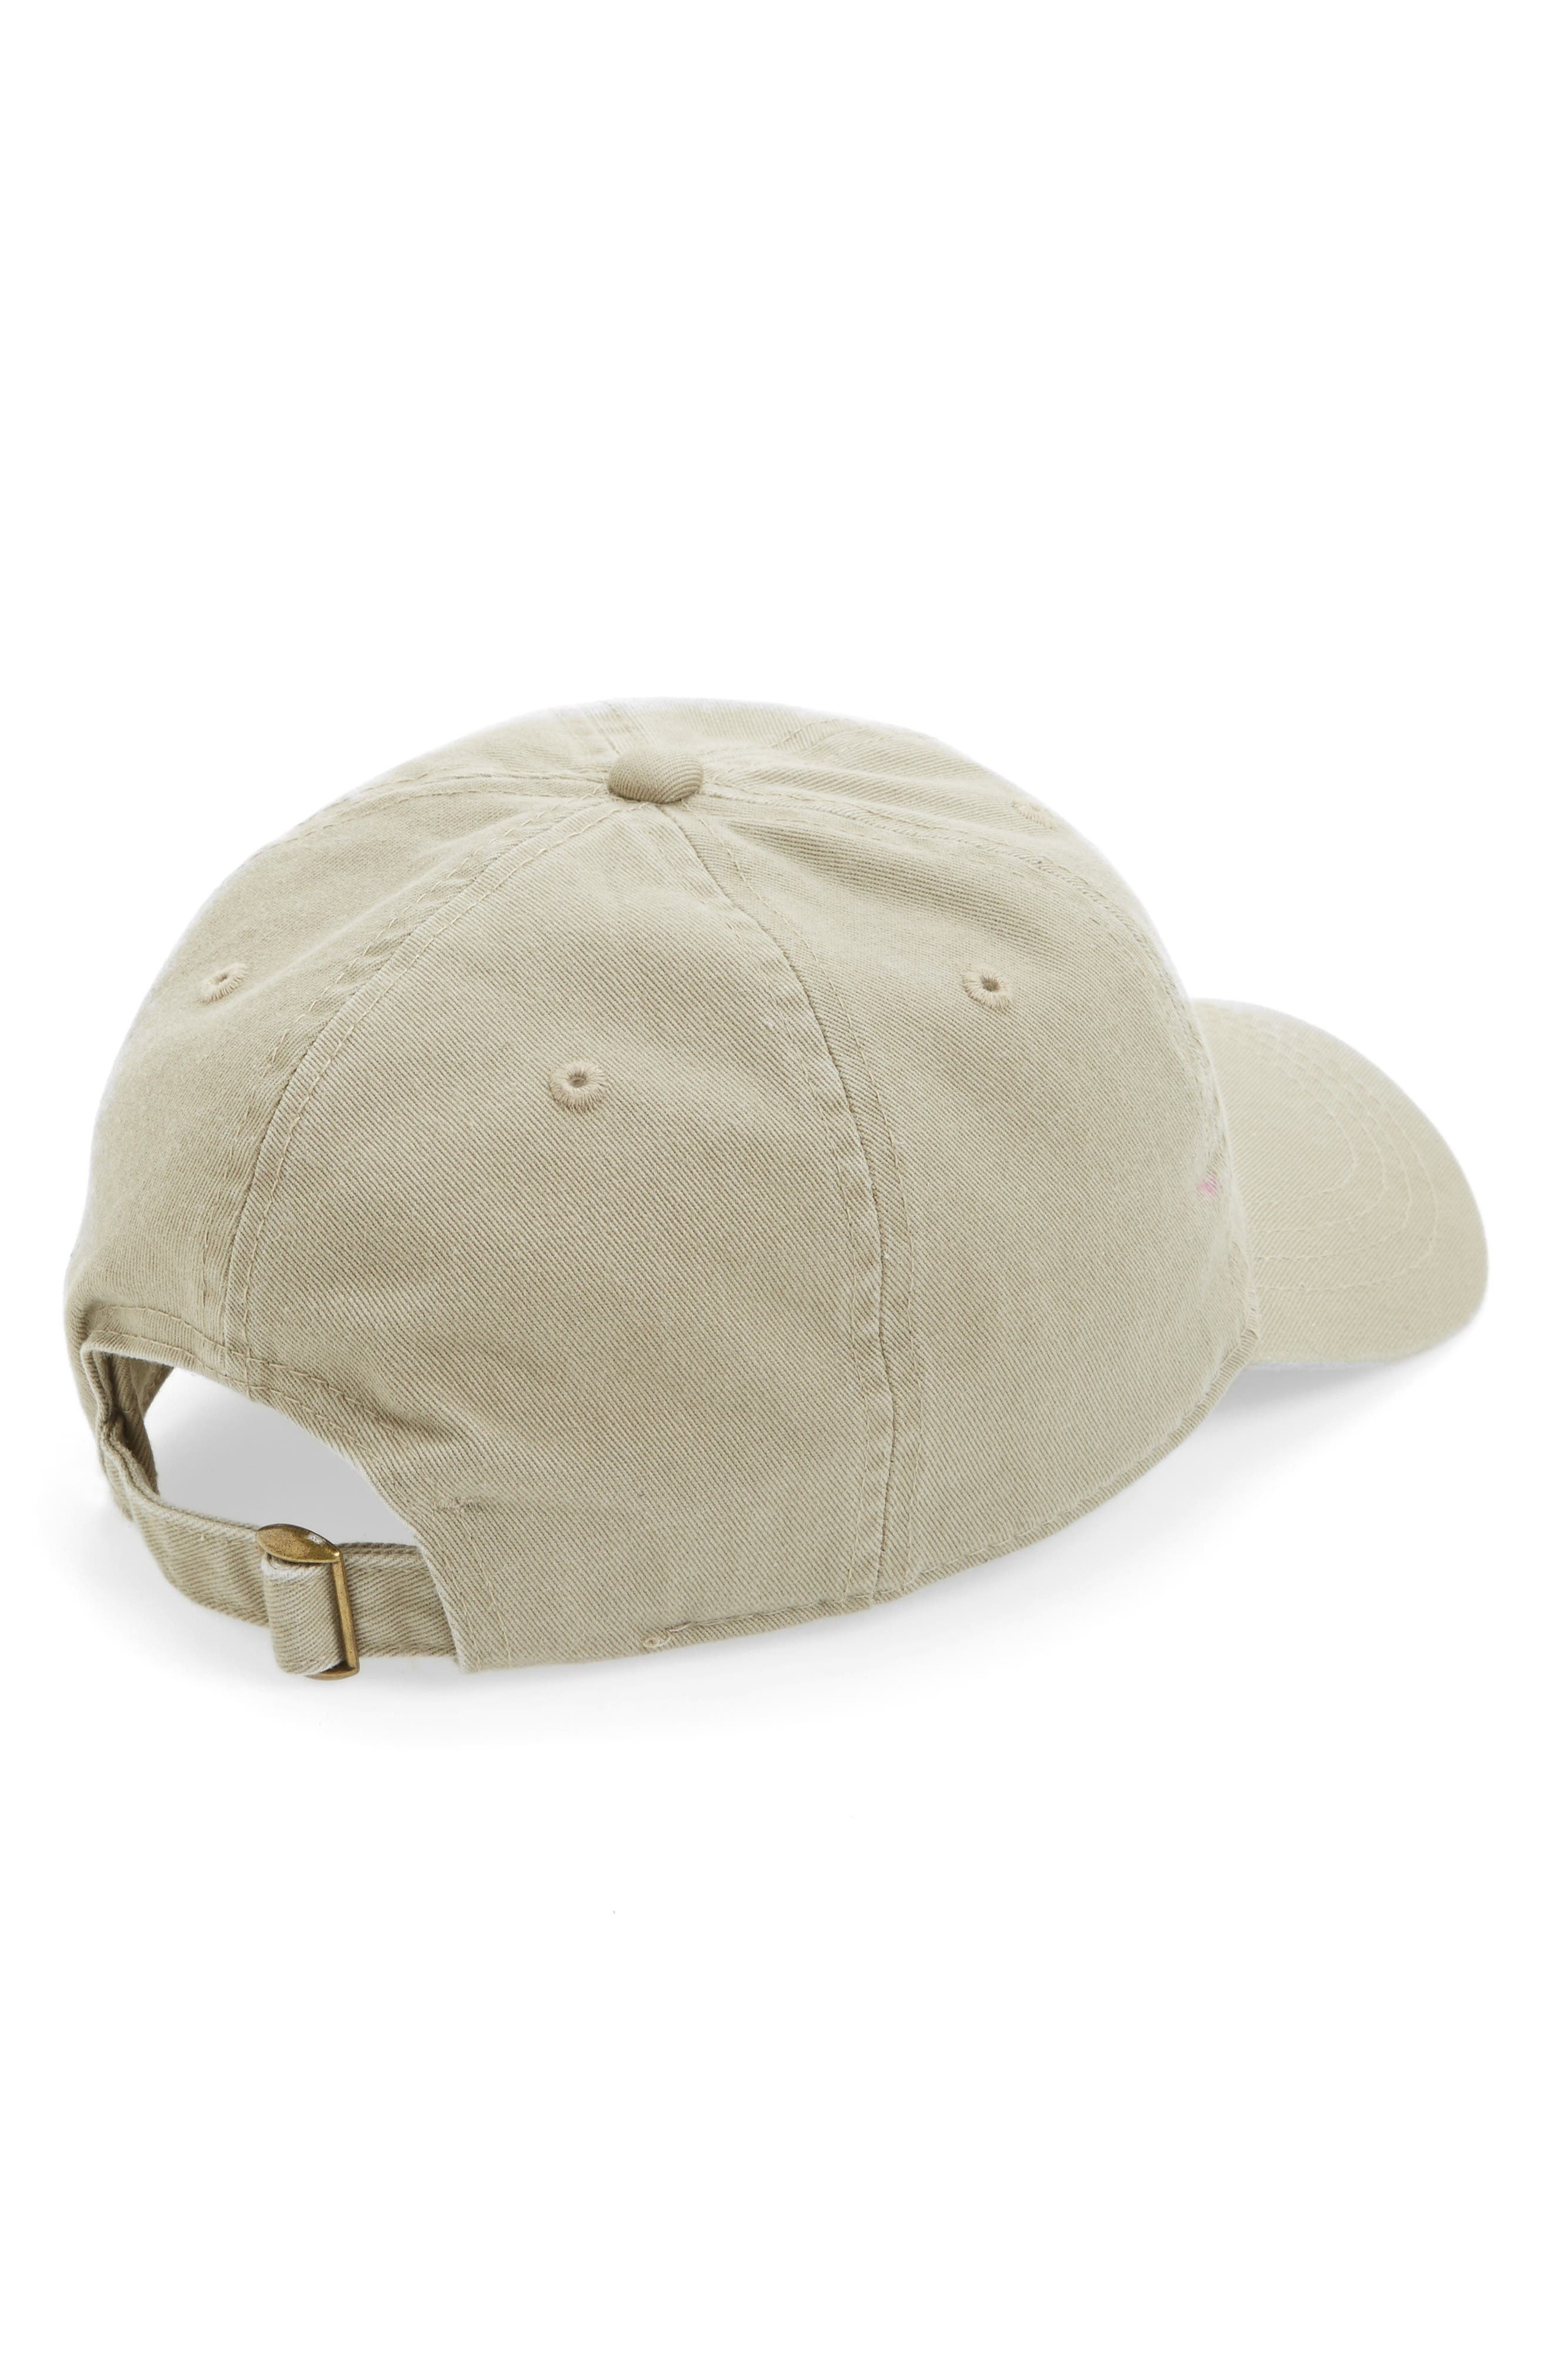 Alternate Image 2  - Body Rags Clothing Co. Twill Dad Kale-Fornia Cap